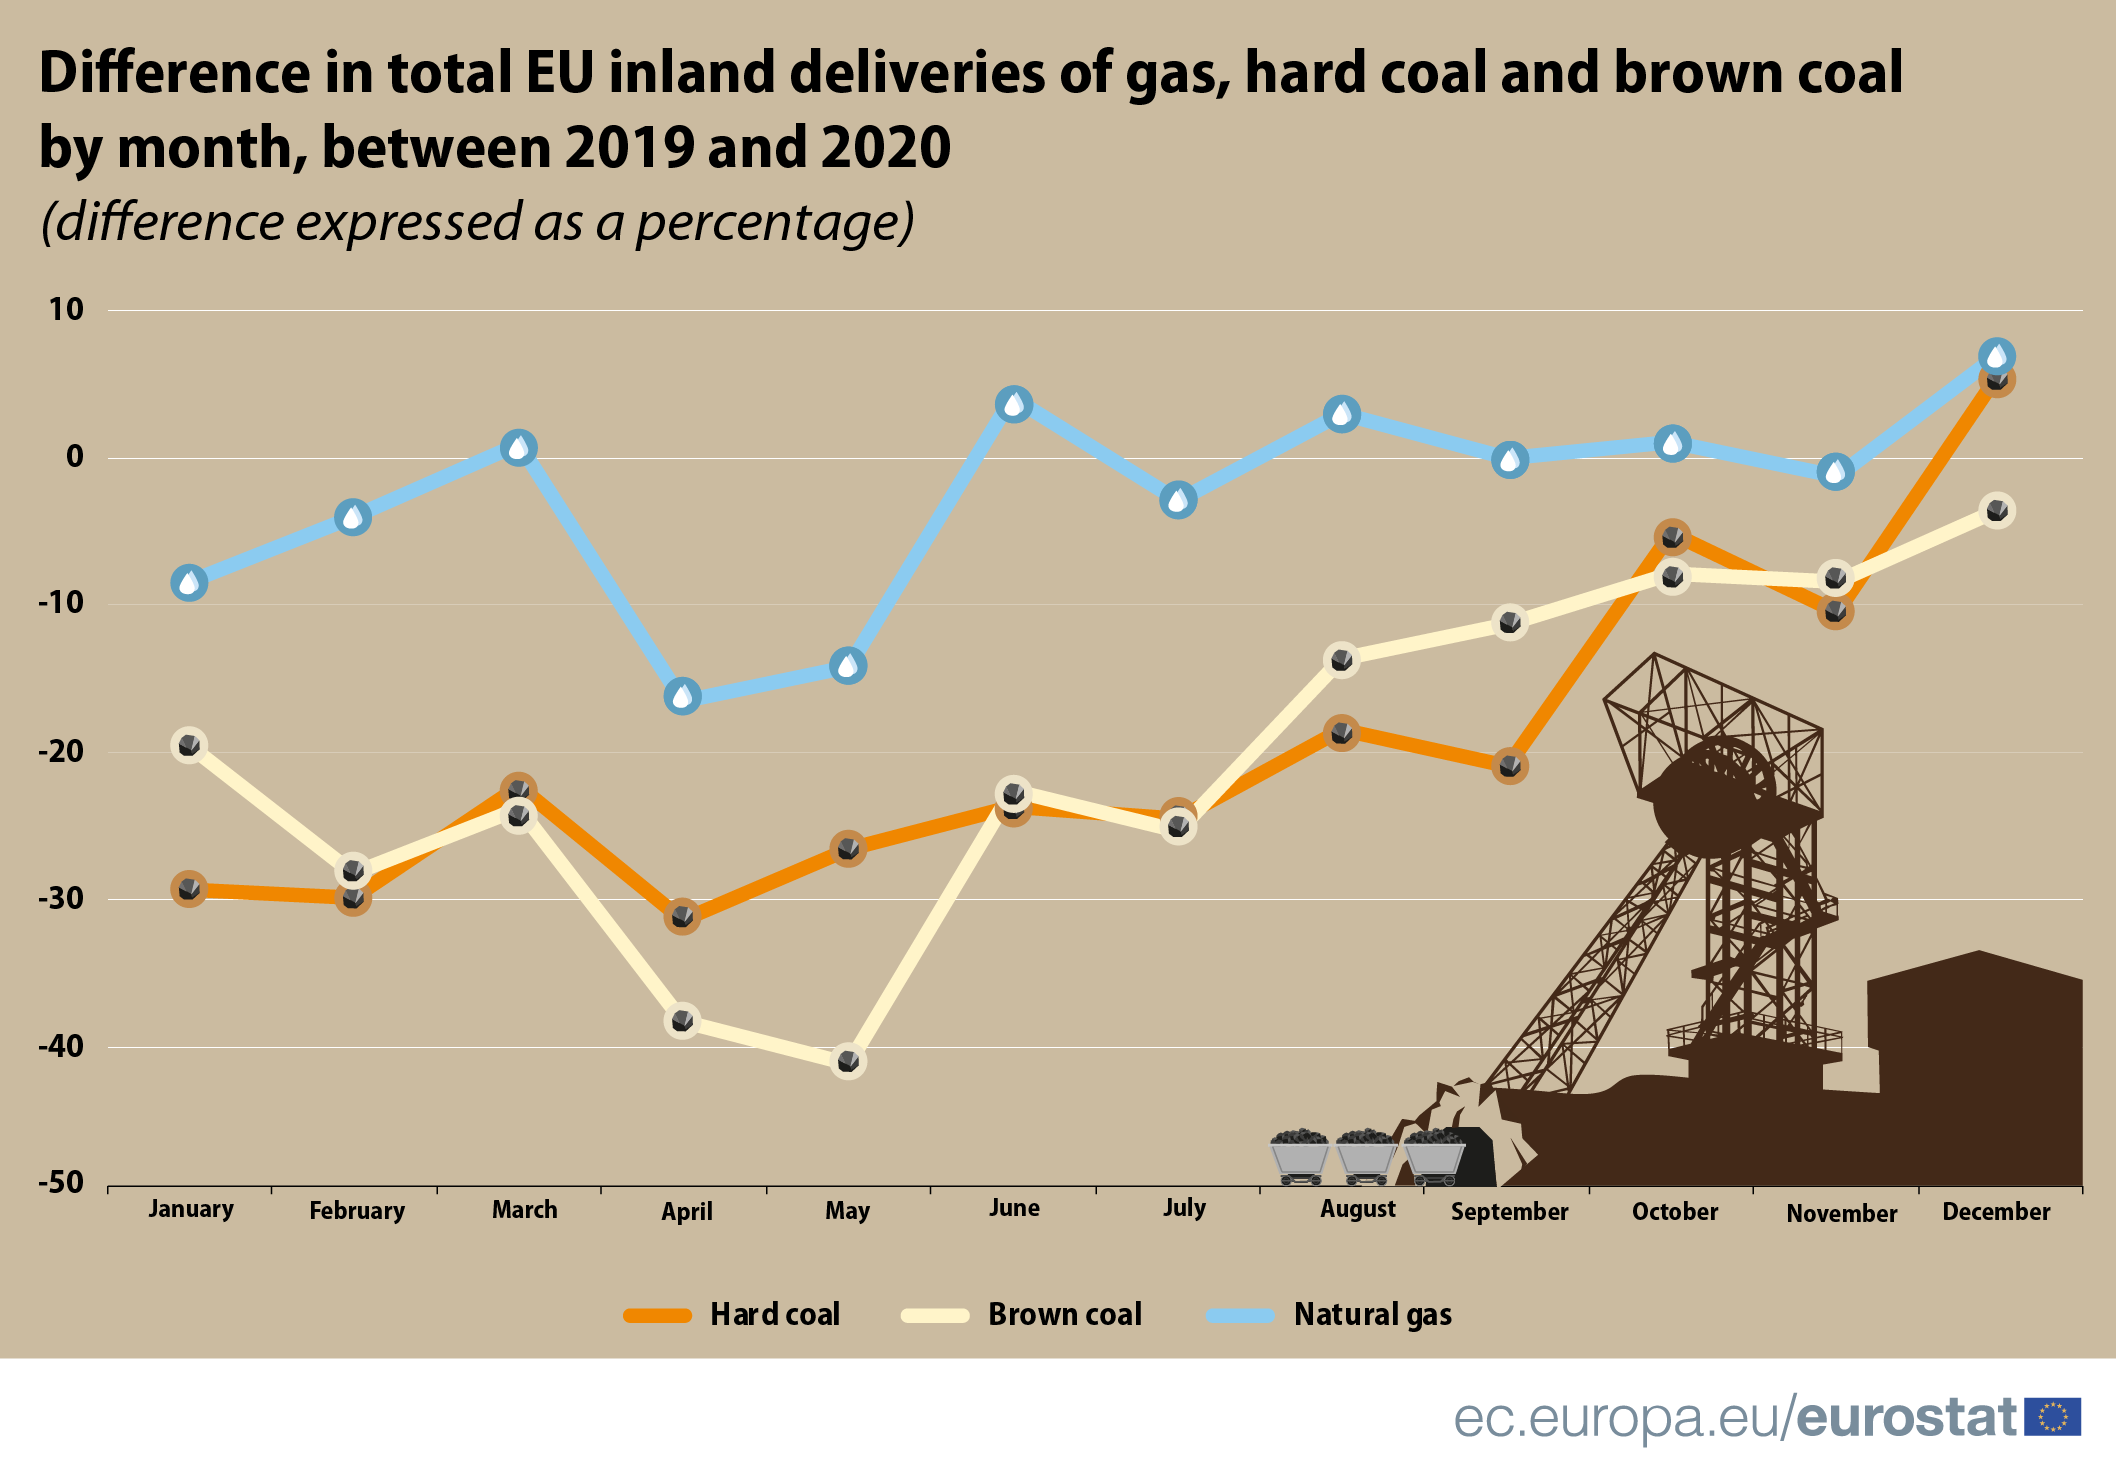 Infographic: Difference in total EU inland deliveries for gas and coal